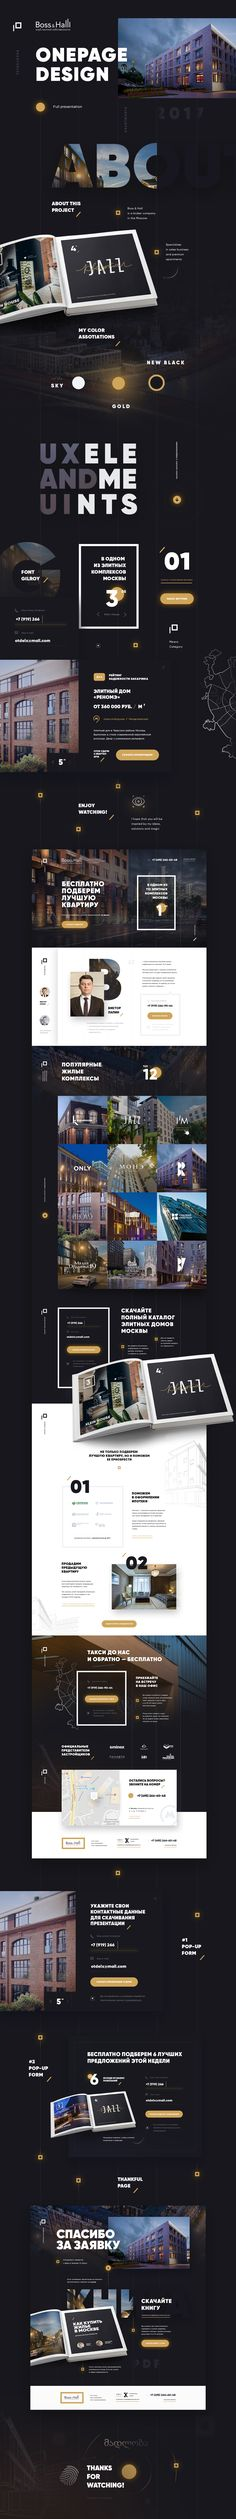 Ознакомьтесь с этим проектом @Behance: «BOSS&HALL - luxury apartments in Moscow onepage» https://www.behance.net/gallery/55285457/BOSS-HALL-luxury-apartments-in-Moscow-onepage